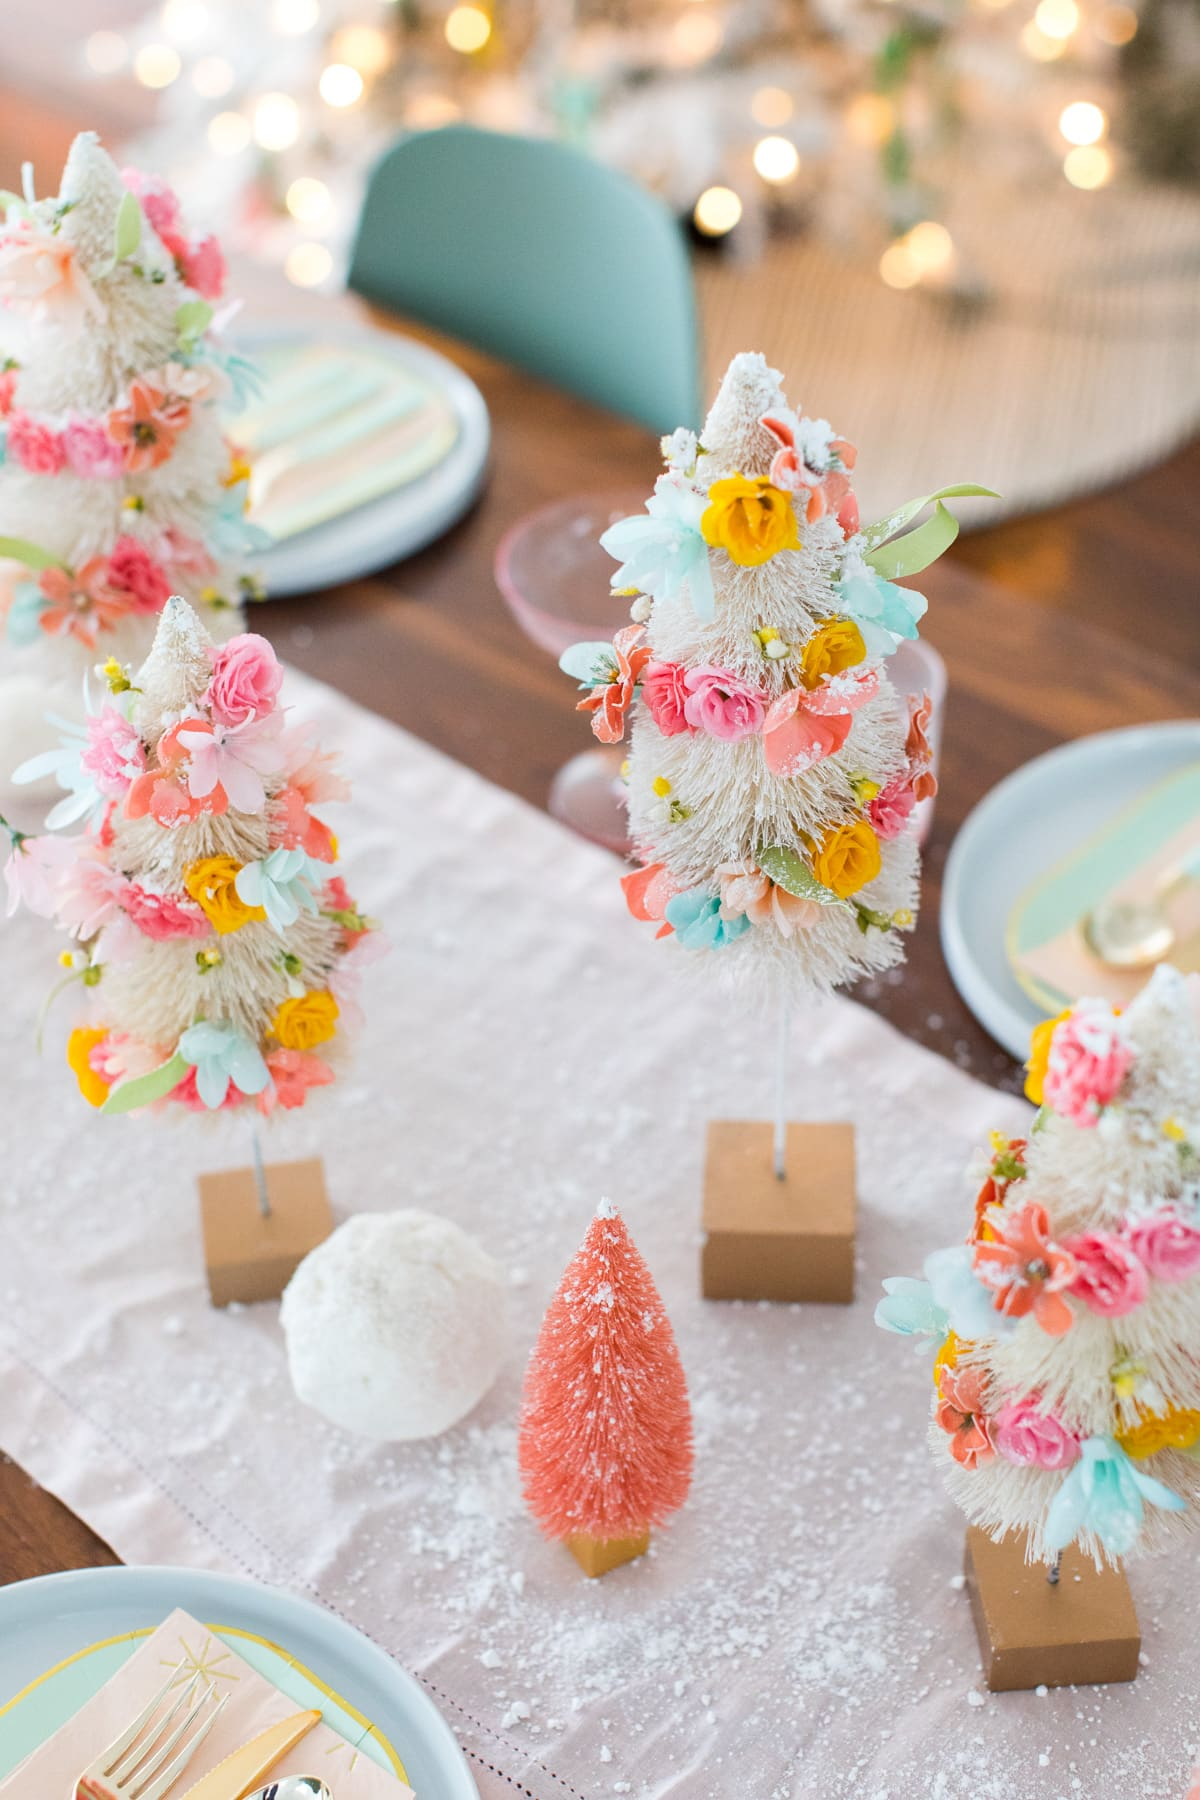 I love how they turned out! Faux Flower Bottle Brush Tree DIY Christmas Centerpiece Idea by top Houston lifestyle blogger Ashley Rose of Sugar and Cloth #diy #christmas #decor #howto #craft #entertaining #centerpiece #ideas